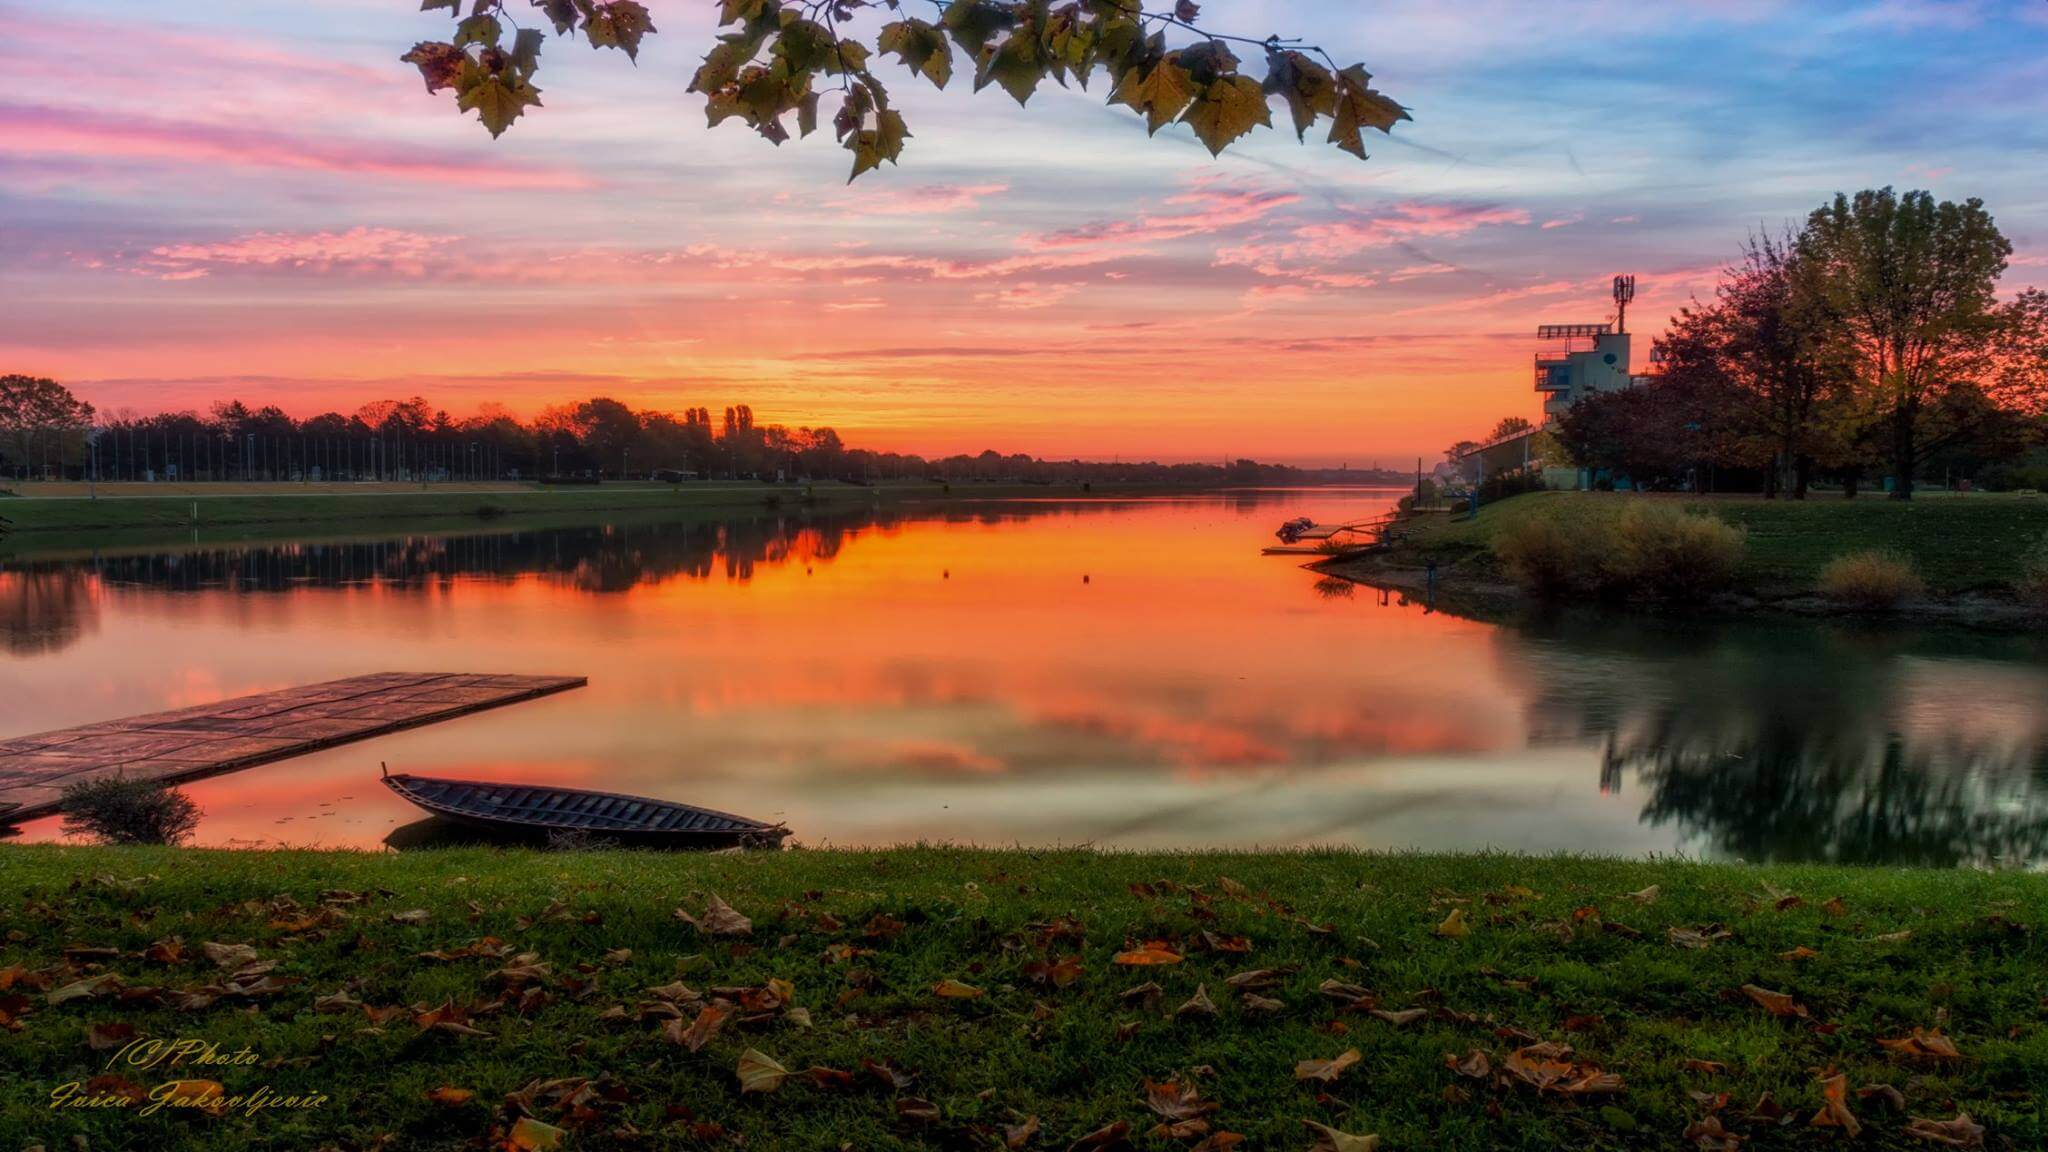 Photos That Will Make You Fall in Love with Autumn